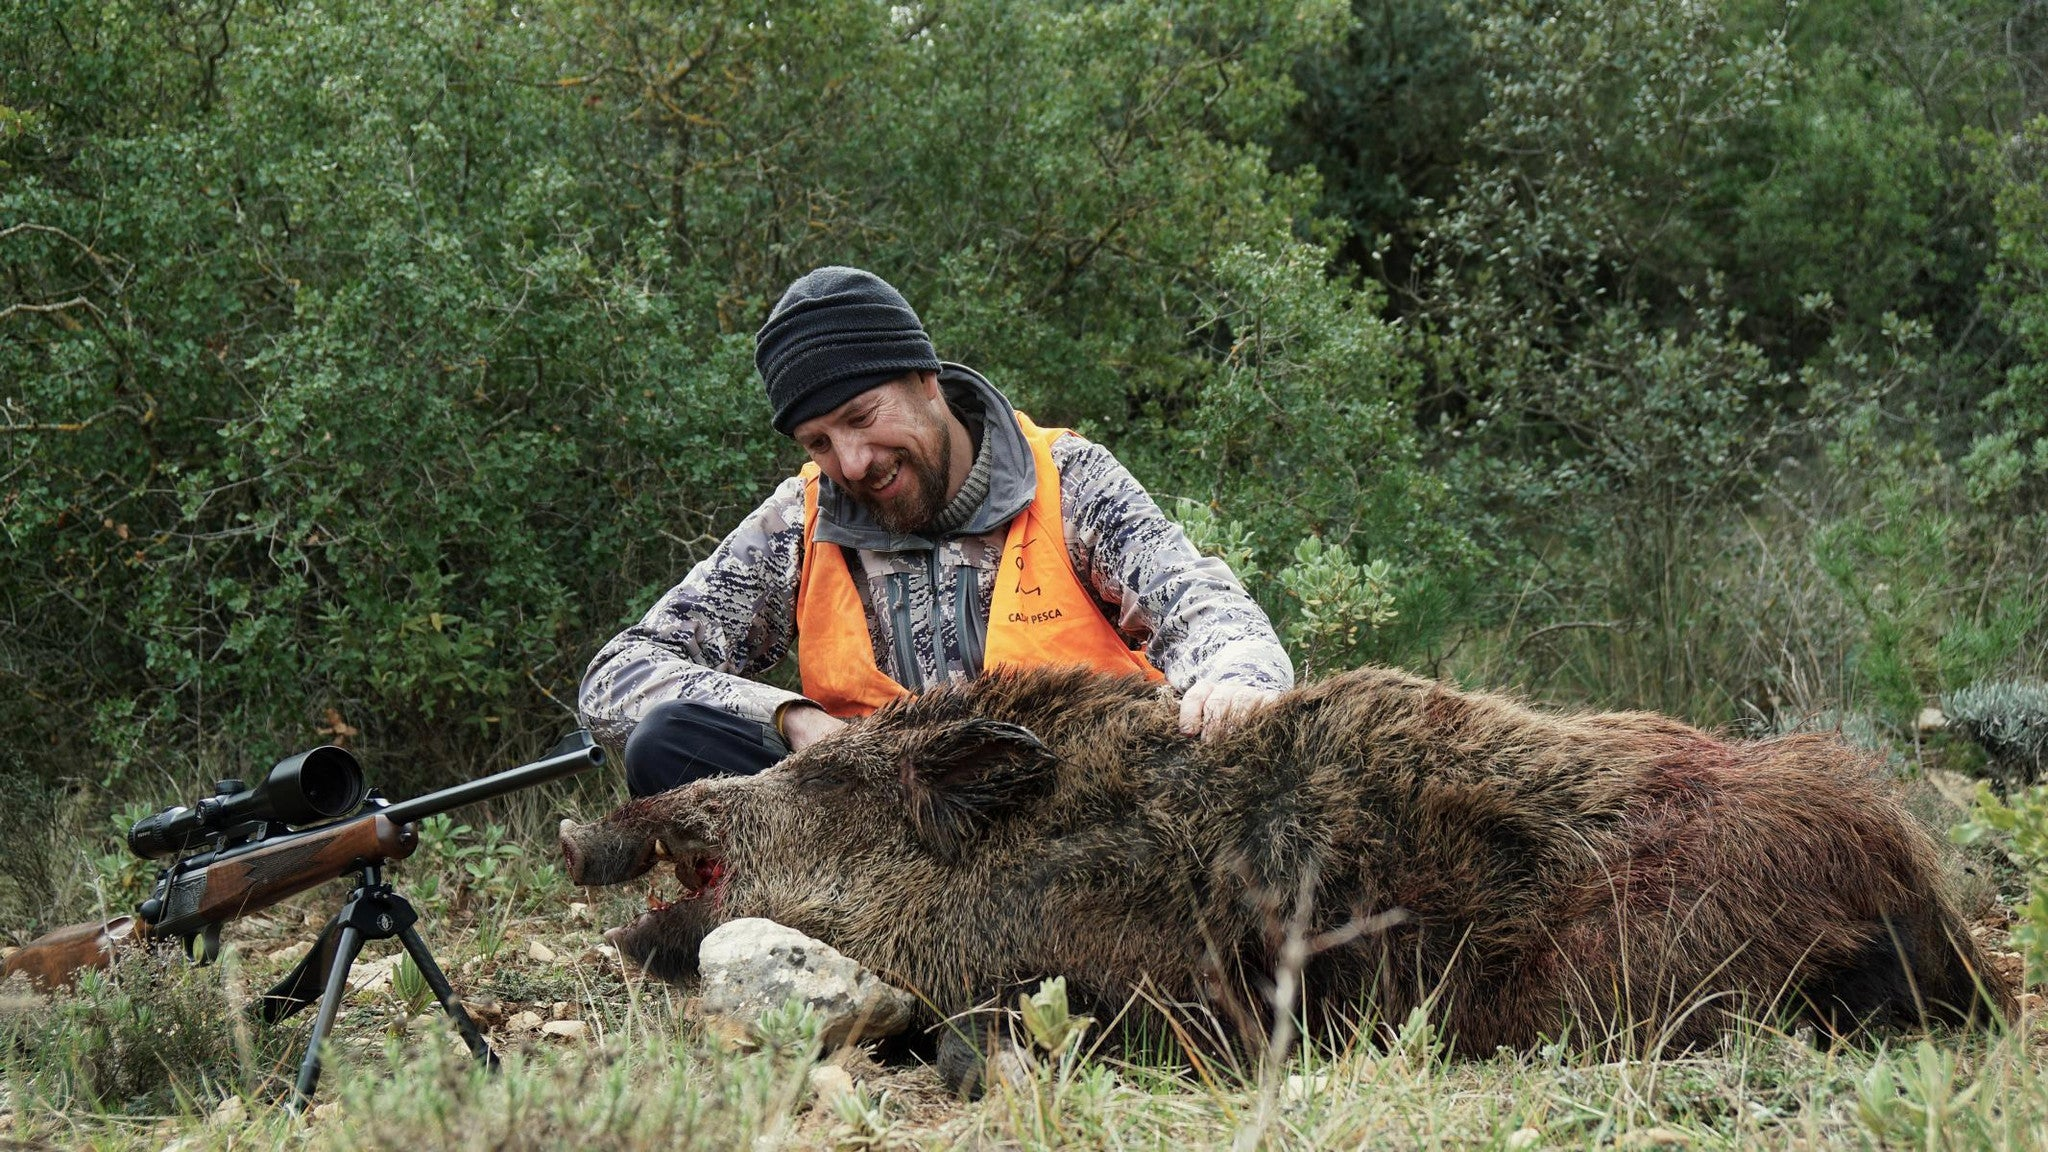 Boar hunting in Spain with the Javelin Mk.2 Super-Lite